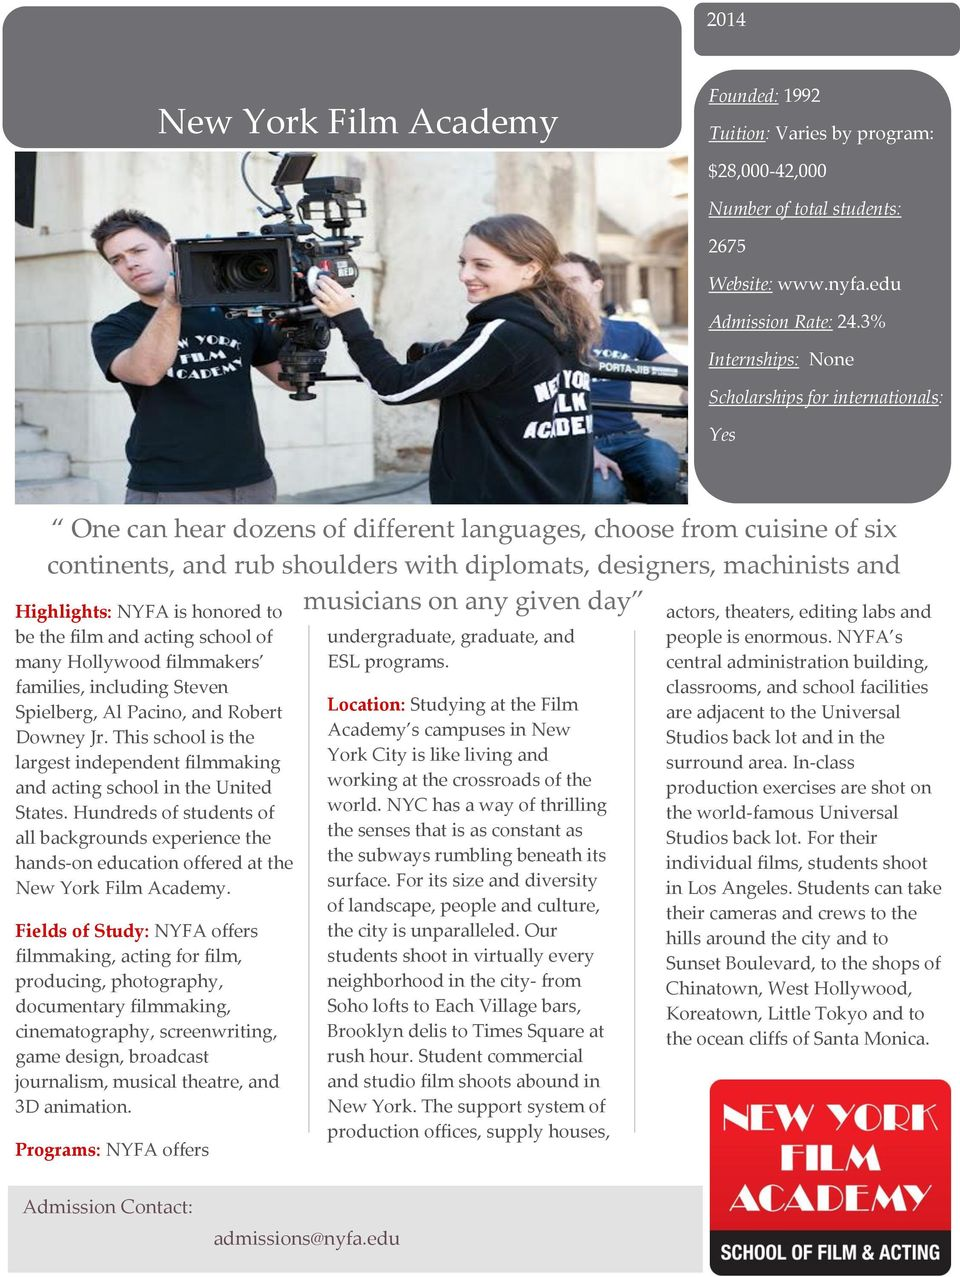 Highlights: NYFA is honored to be the film and acting school of many Hollywood filmmakers families, including Steven Spielberg, Al Pacino, and Robert Downey Jr.